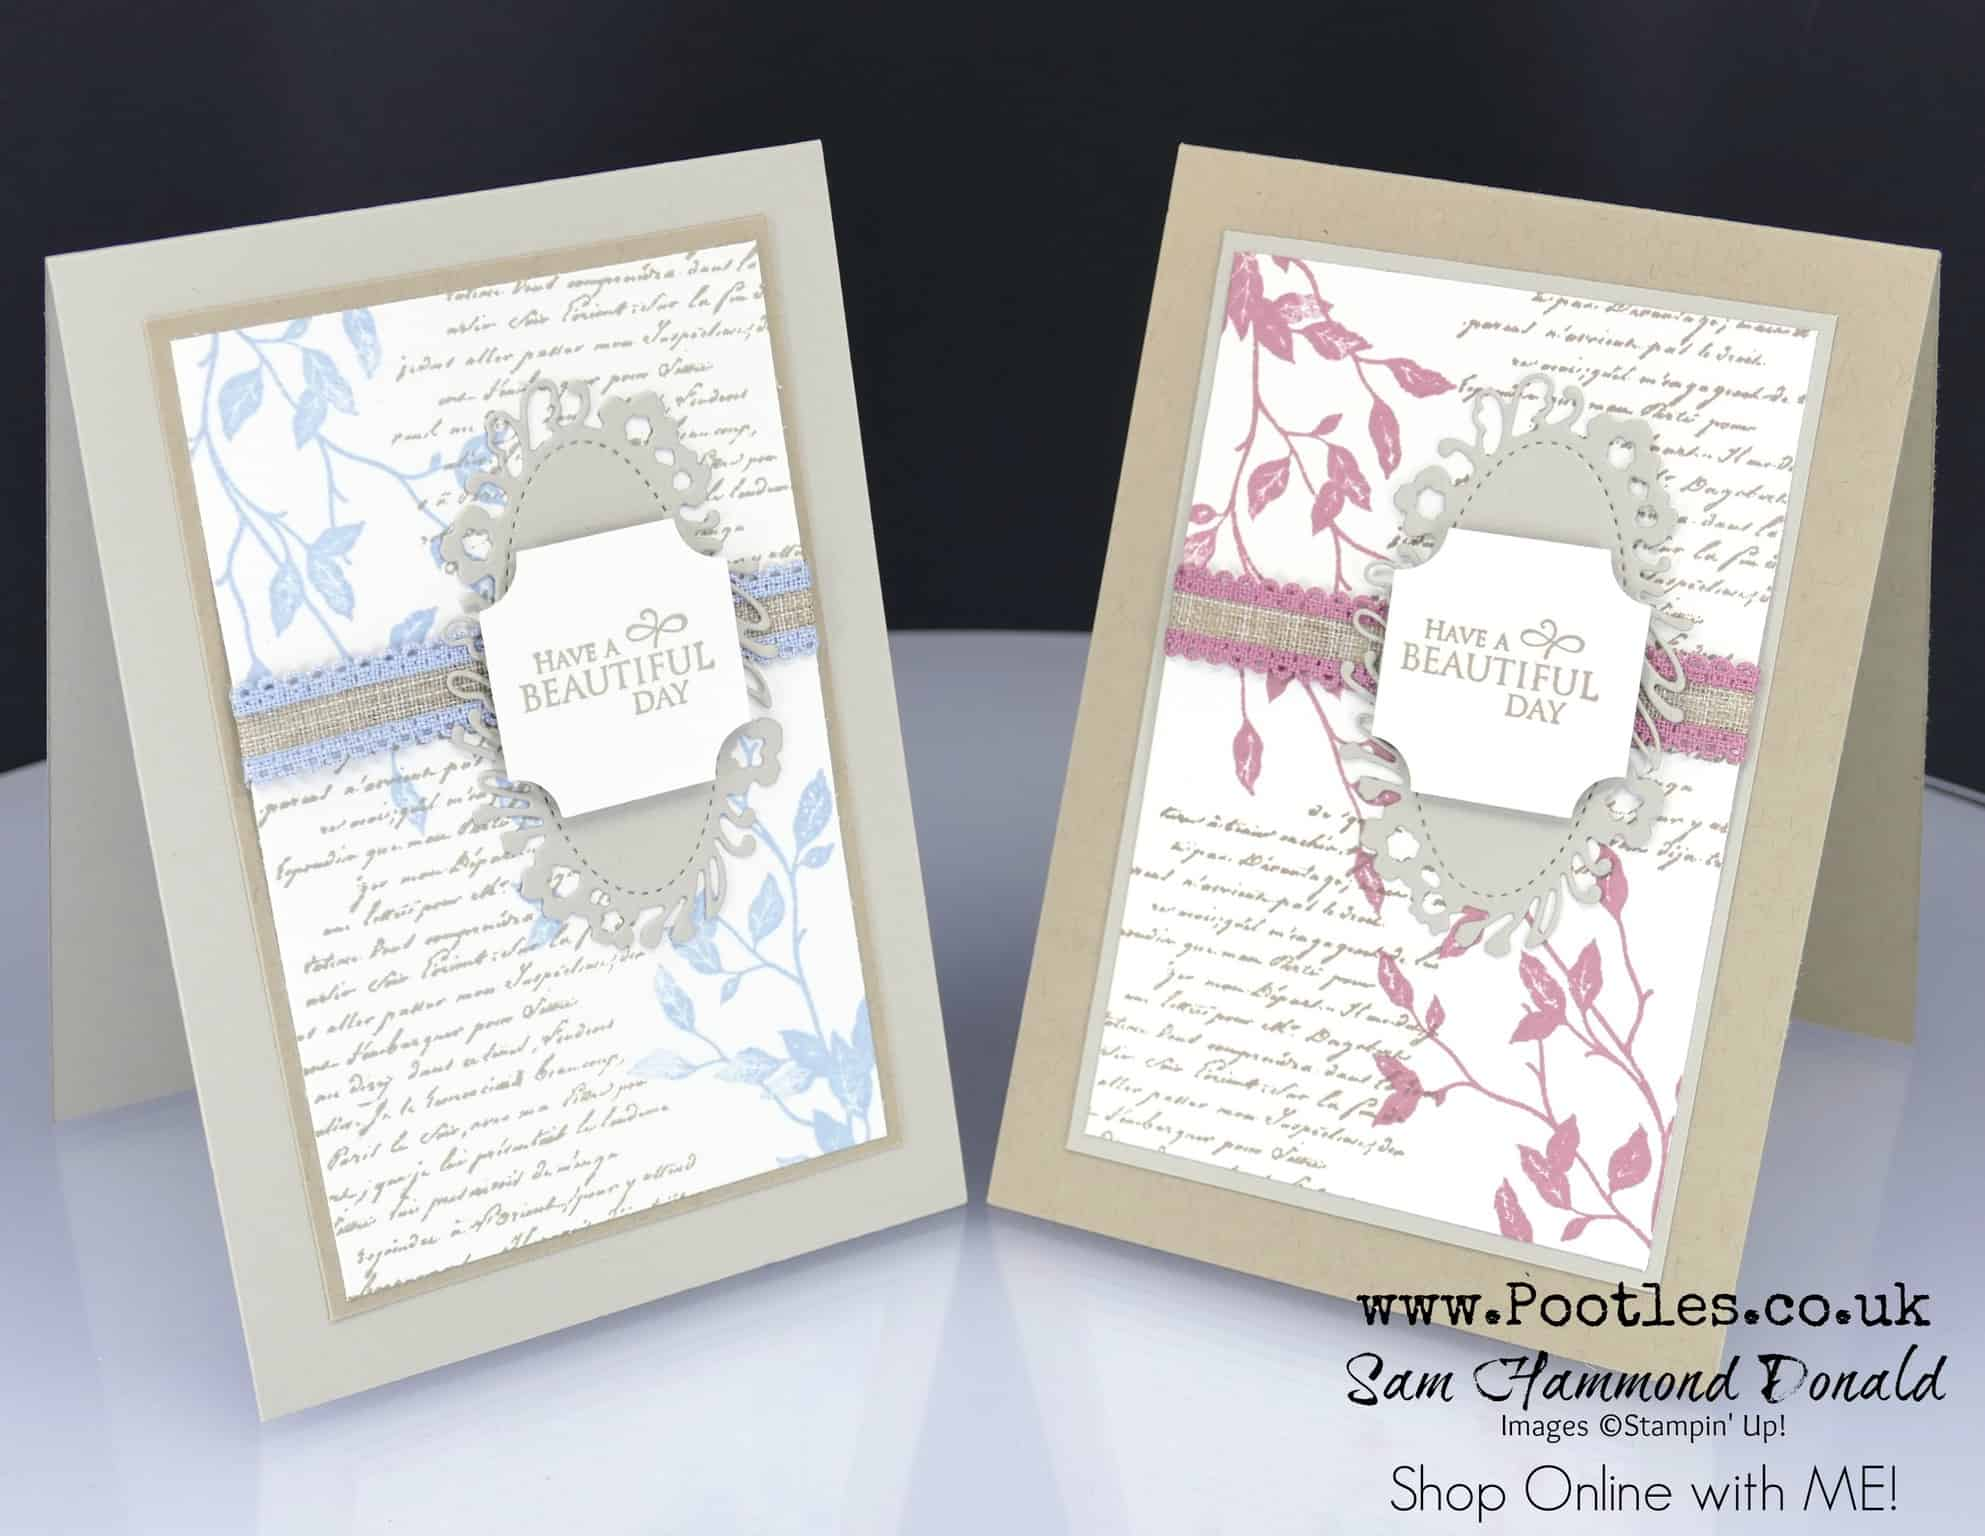 Stampin' Up! #1 Demonstrator Pootles – Very Versailles, casing the